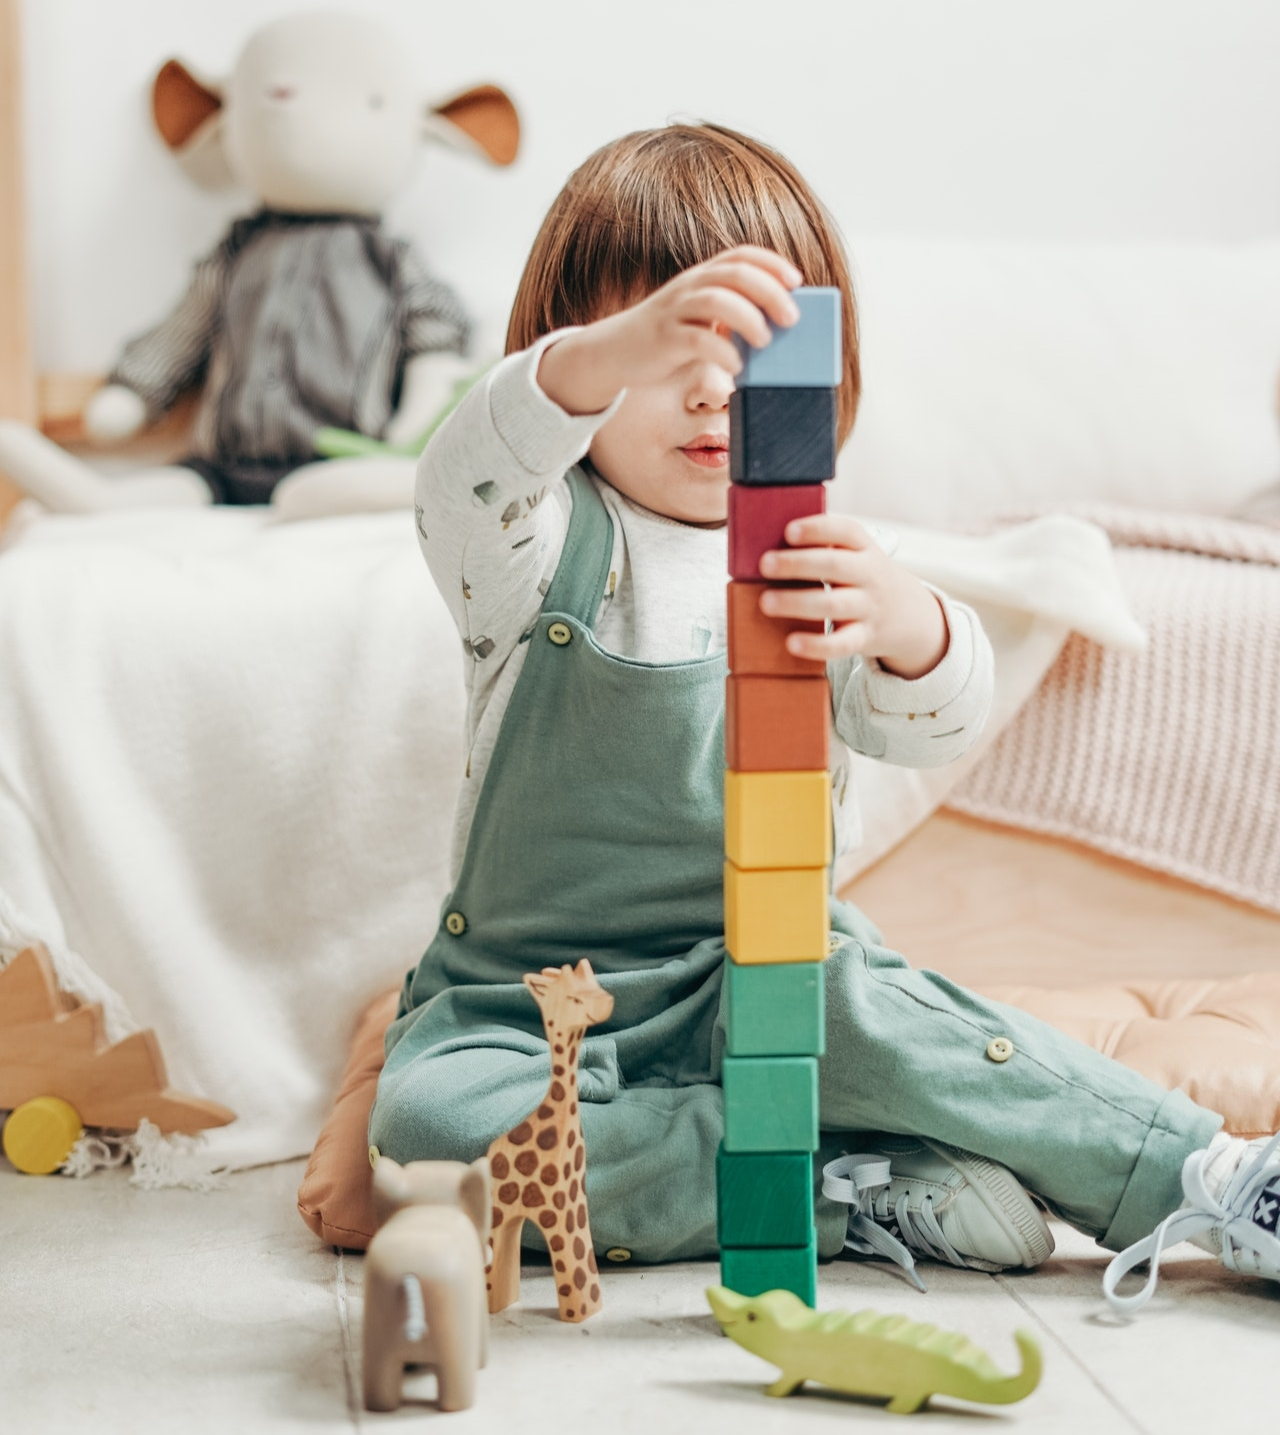 5 Toys for Kids That Can Help Mold Your Child